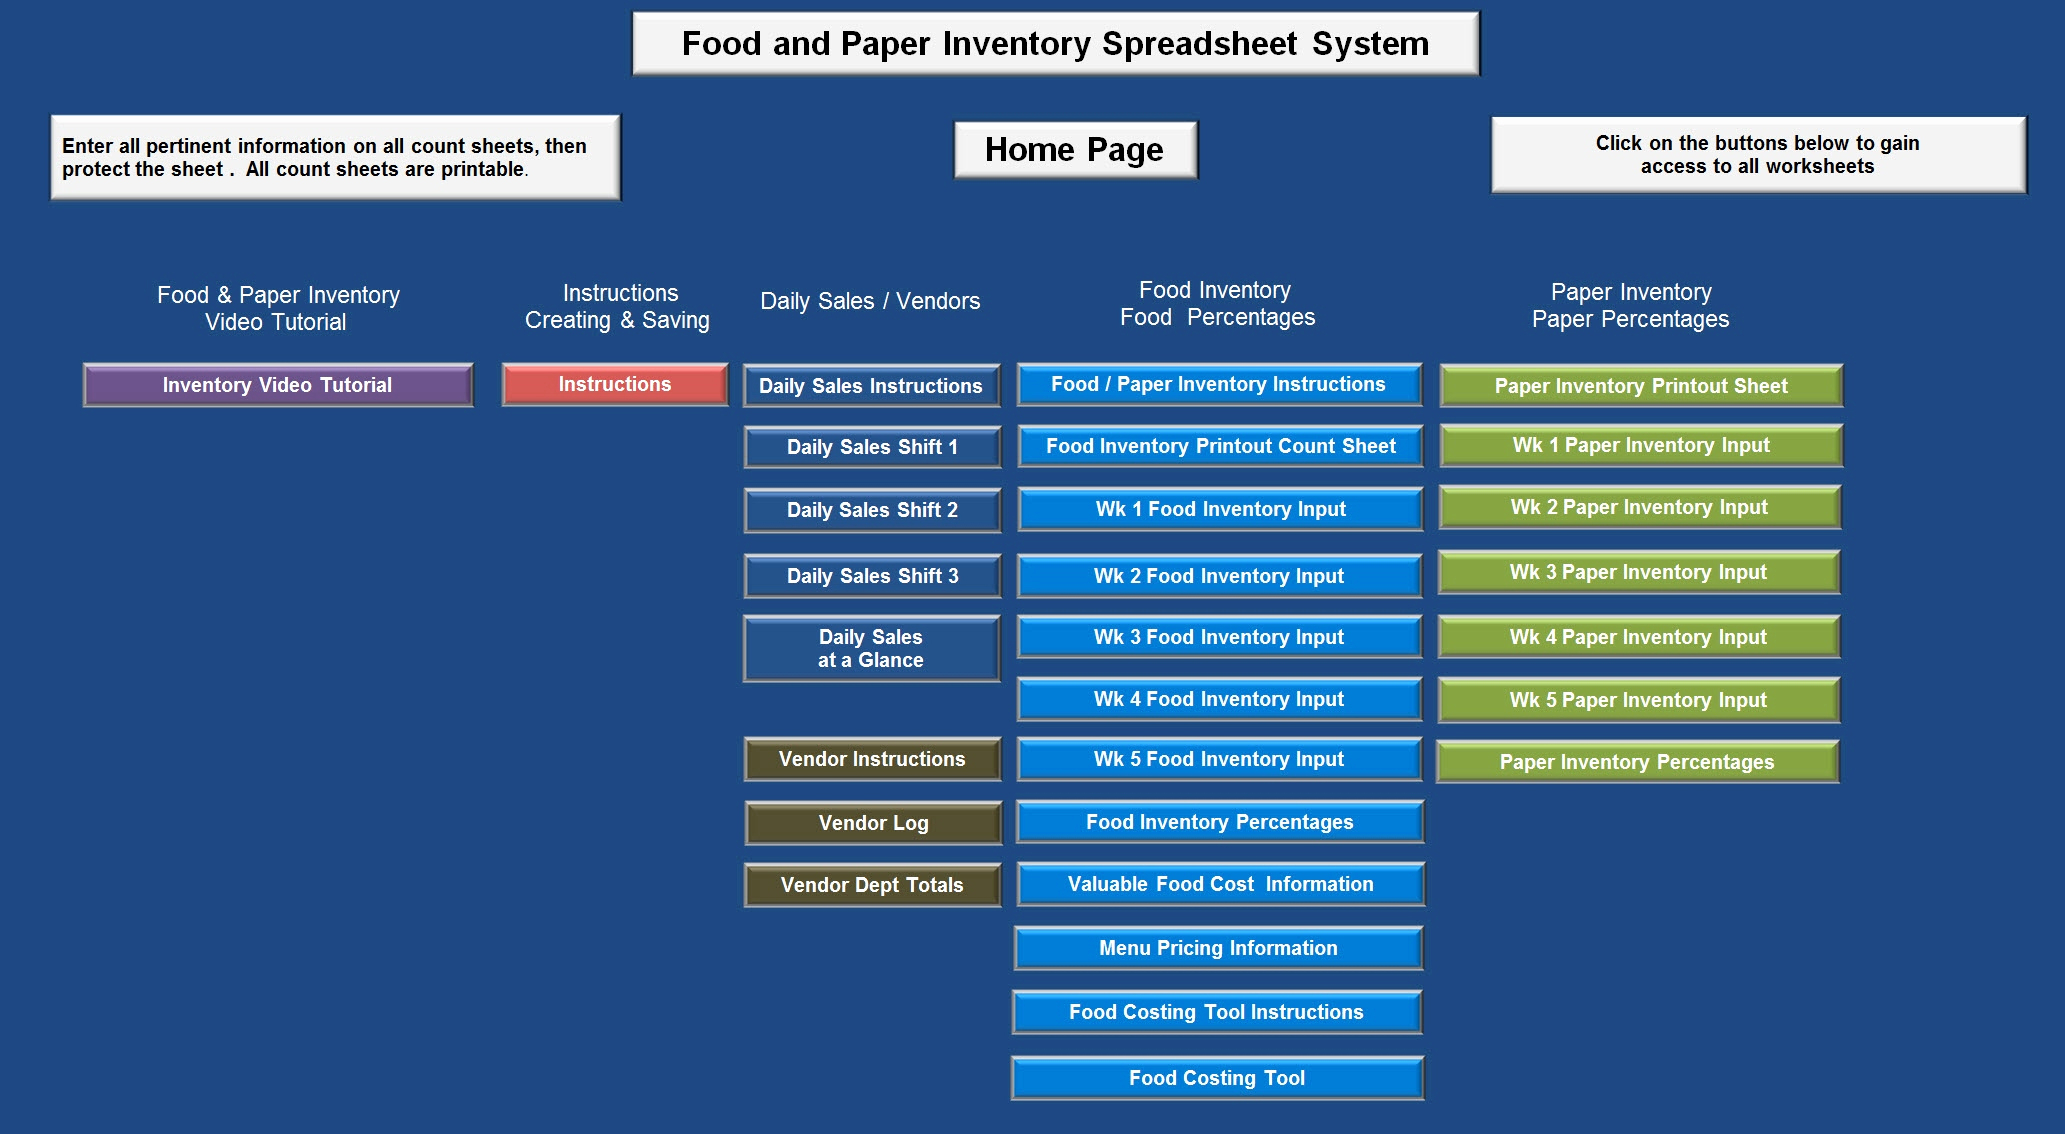 Food Cost Spread Sheet Lovely Food Cost Inventory Spreadsheet in Food Cost Inventory Spreadsheet